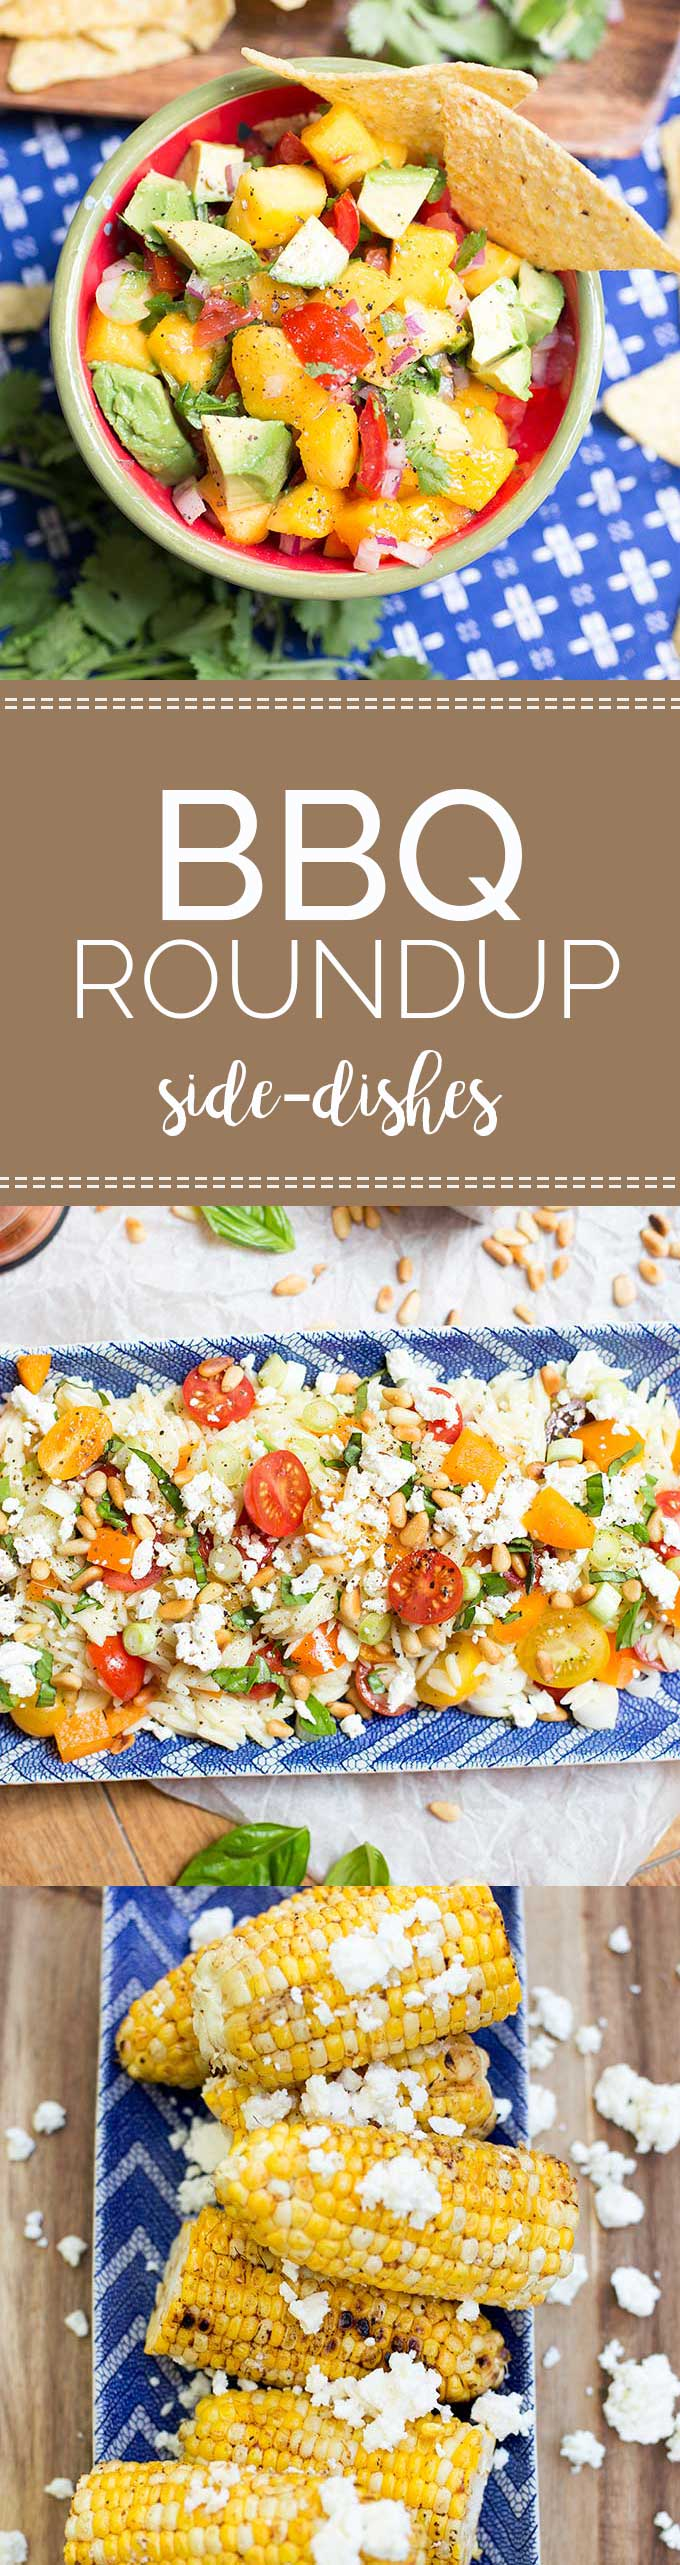 BBQ Sides Roundup: Five of our most-requested sides, like BLT Slaw, Chili and Lime-Grilled Corn and Nectarine Salad, guaranteed to make any BBQ sensational!